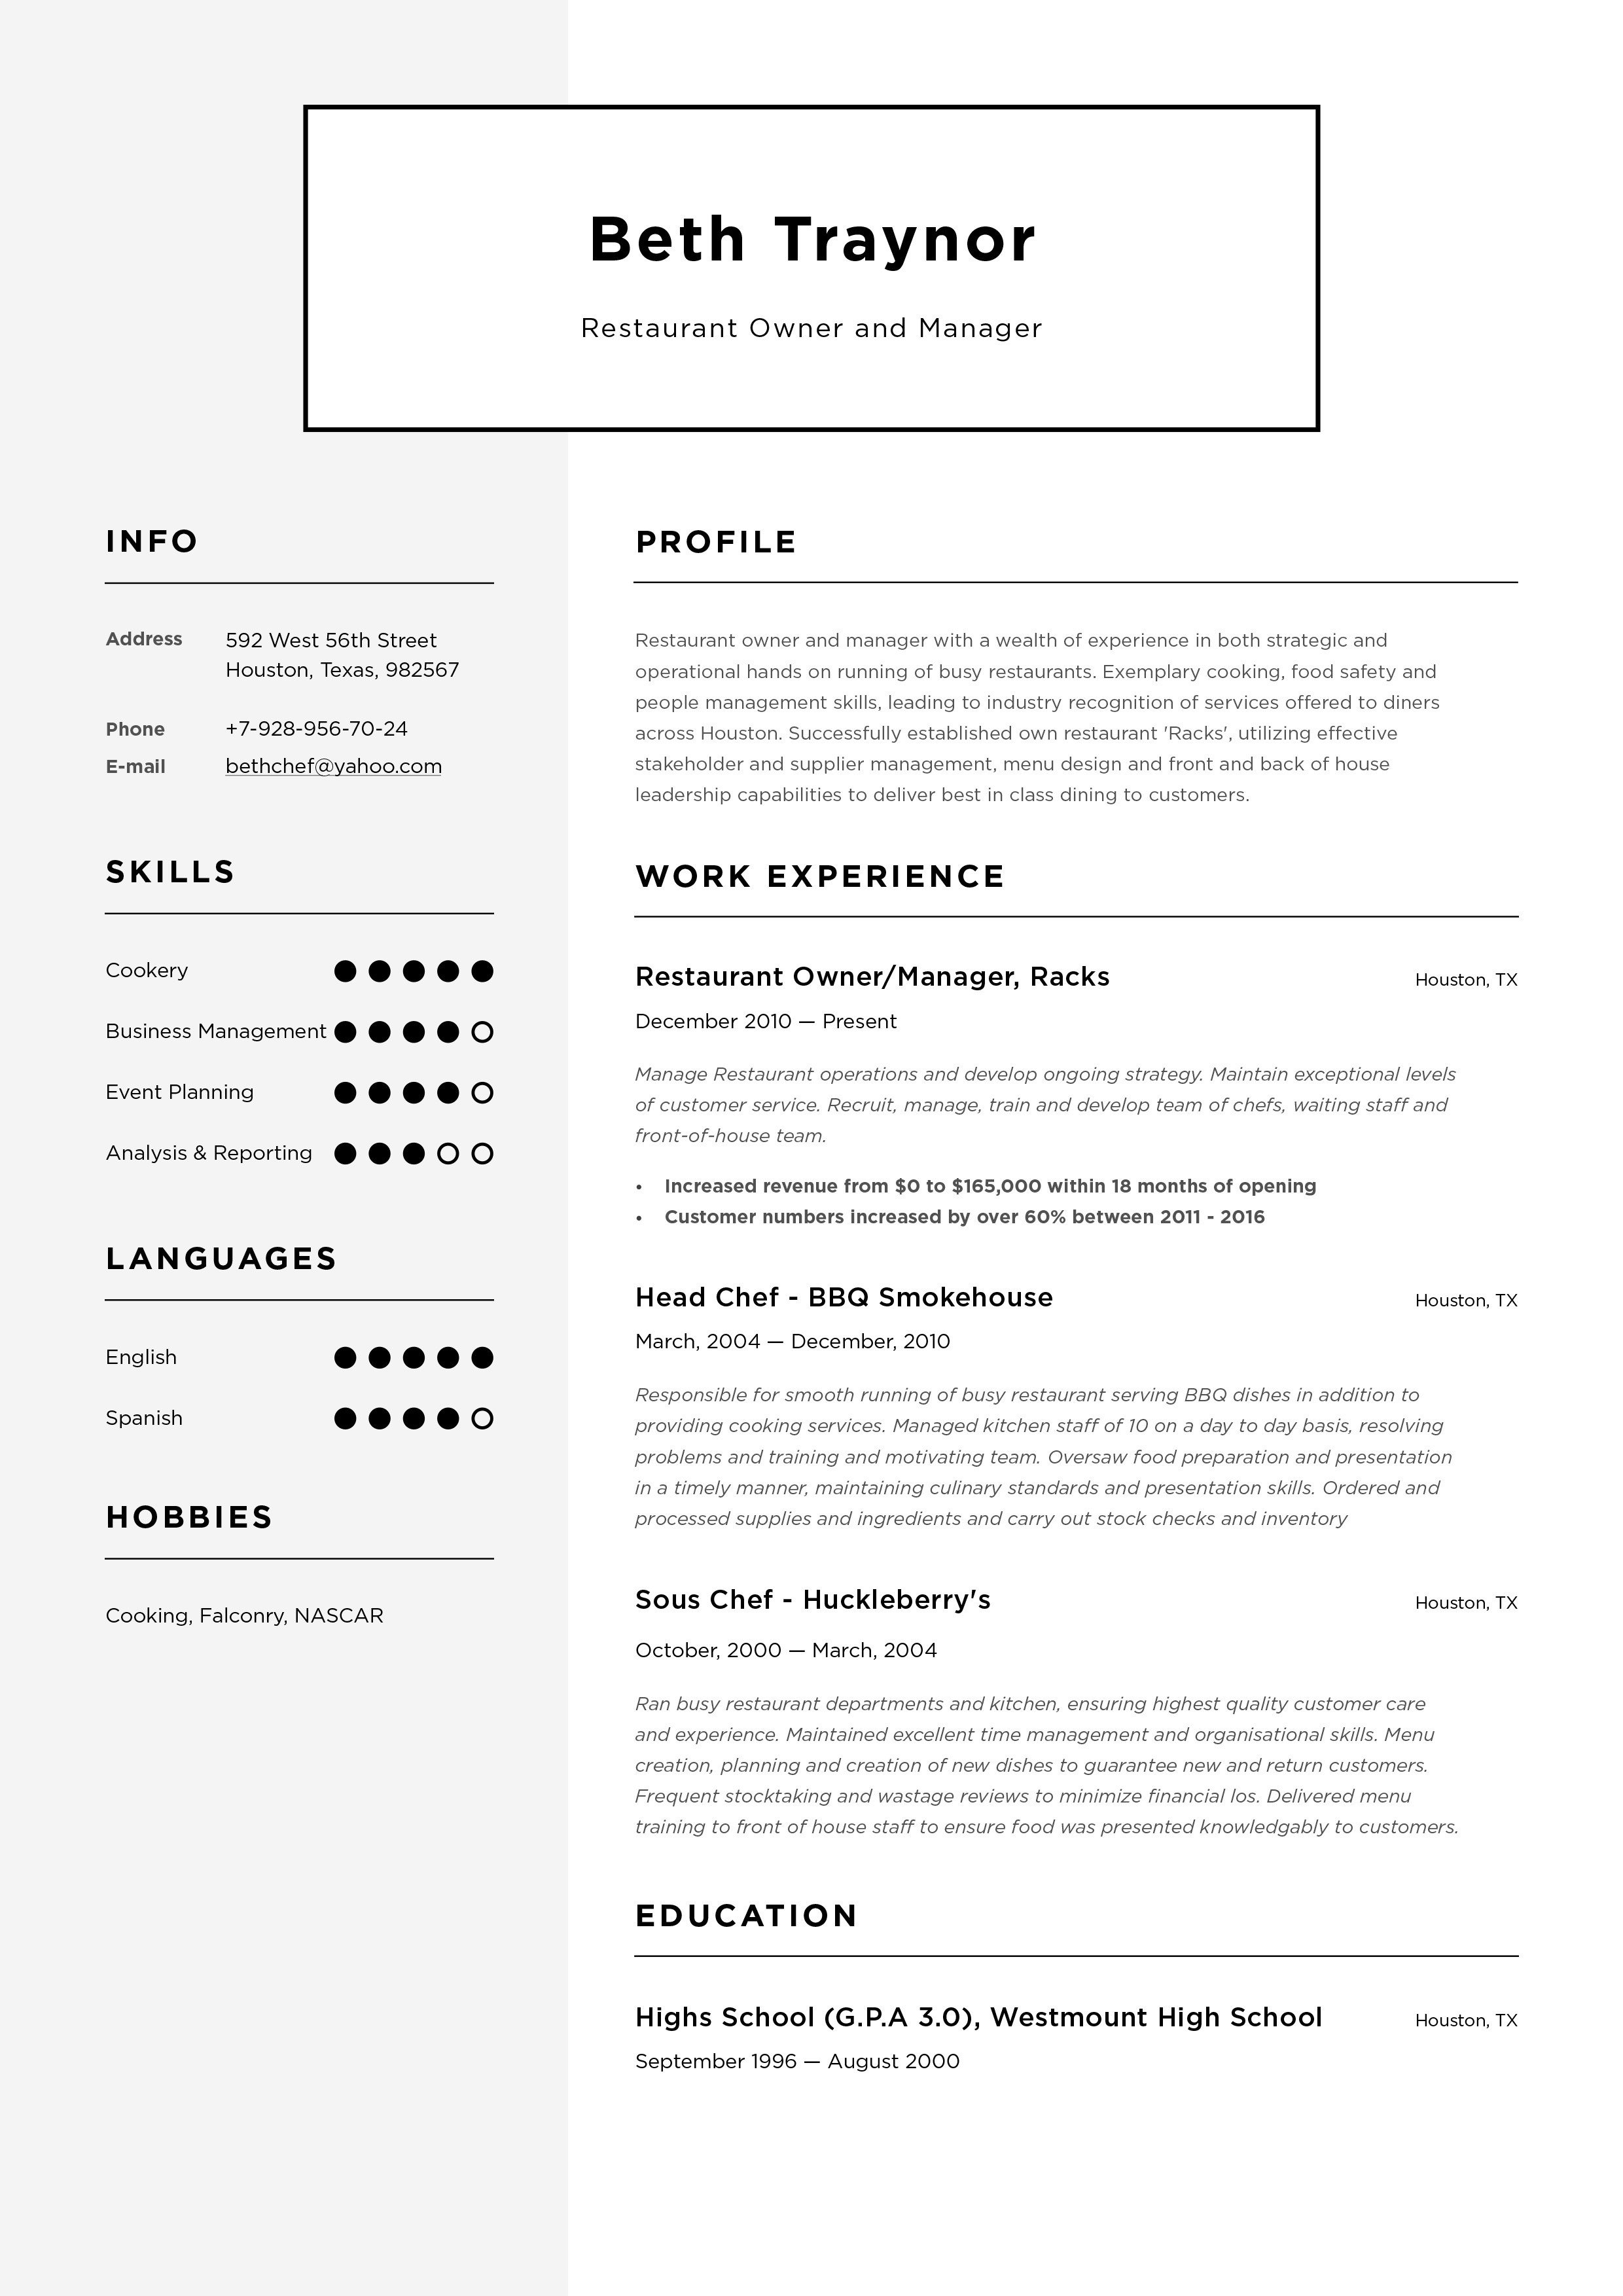 Resume Alternatives and Similar Websites and Apps